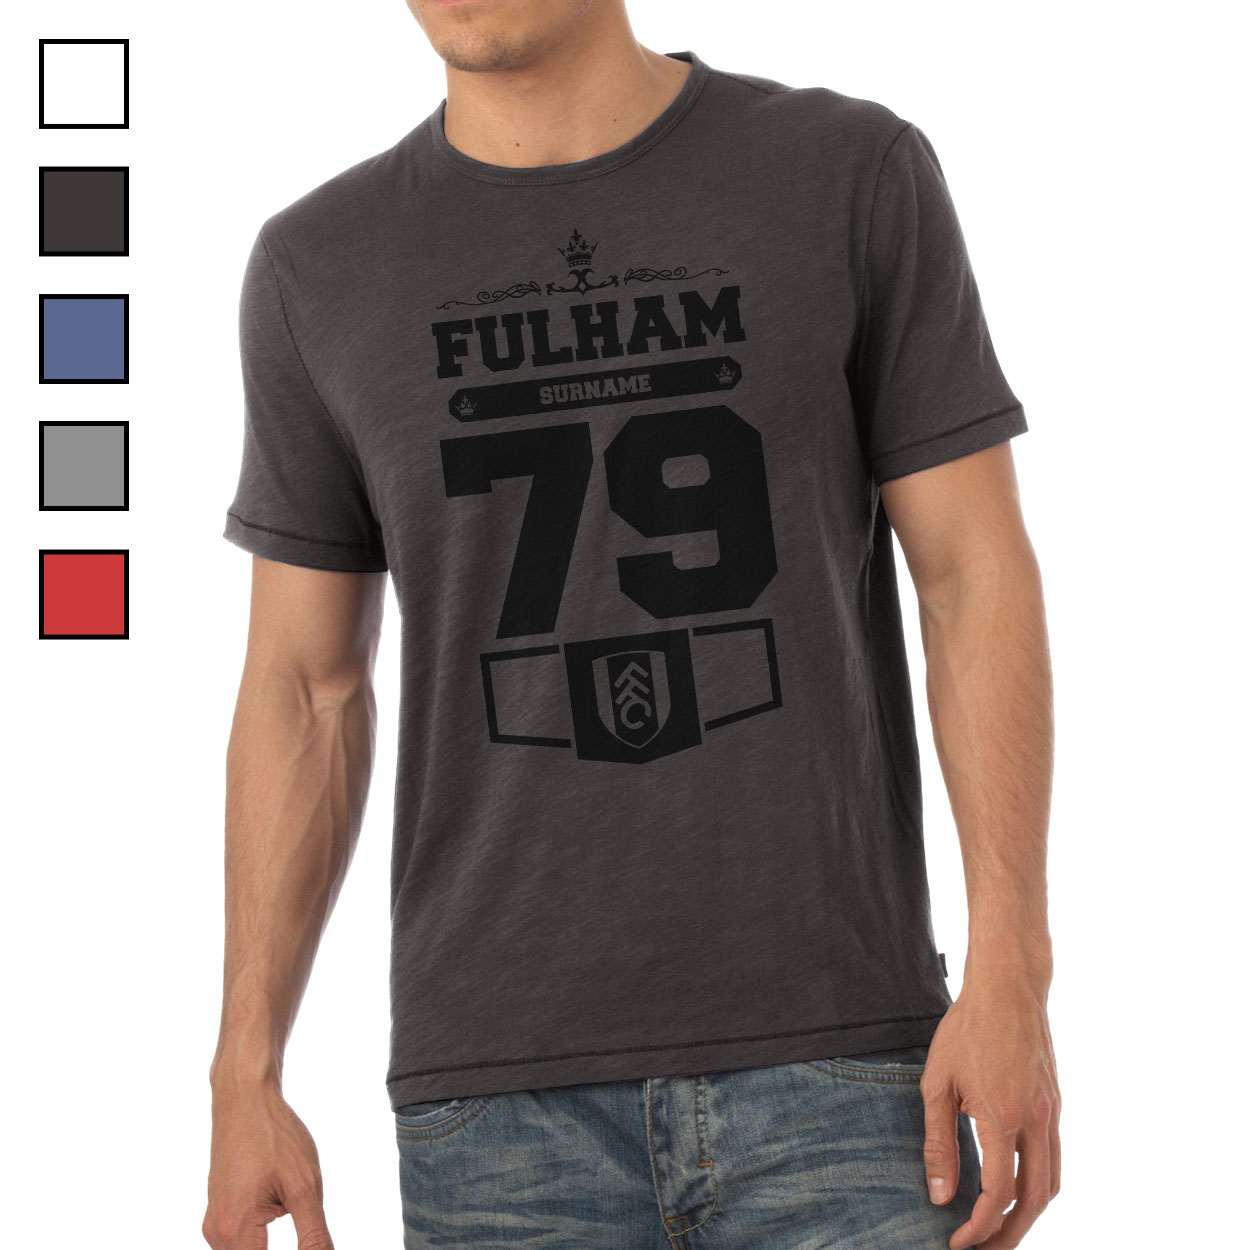 Fulham FC Mens Club T-Shirt